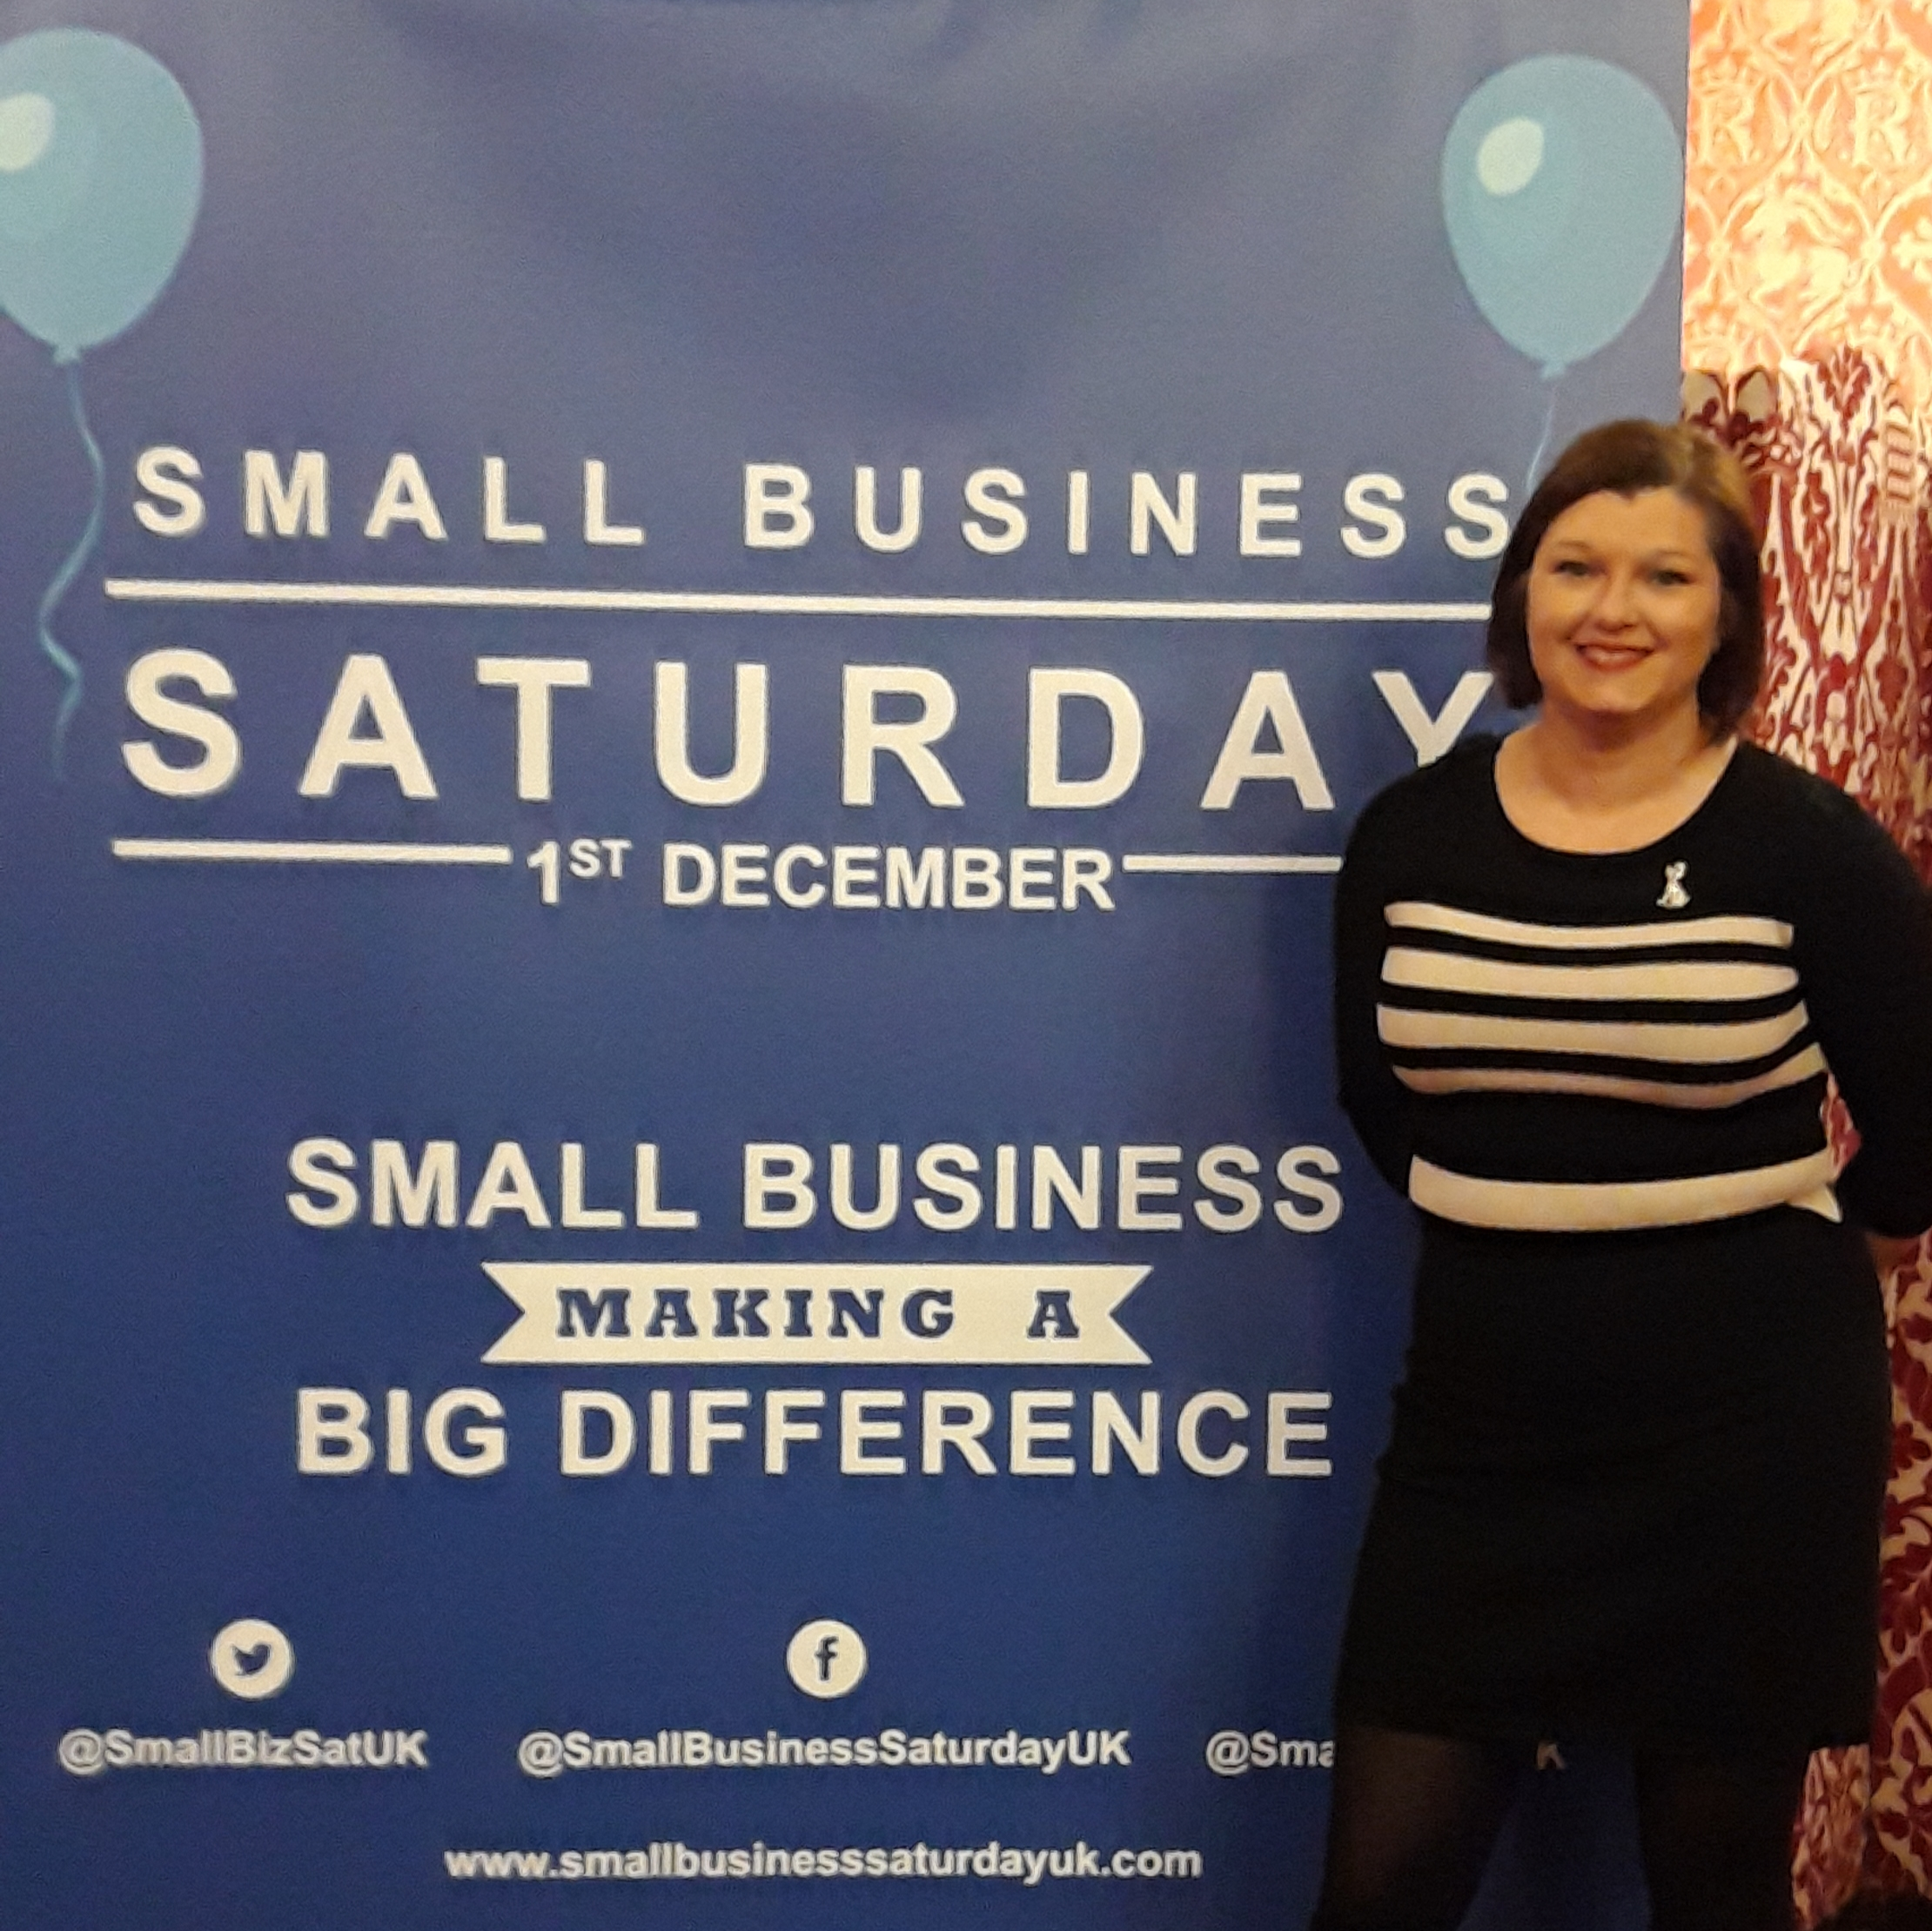 Fur Babies Small Business Saturday Small Biz 100 House of Lords reception